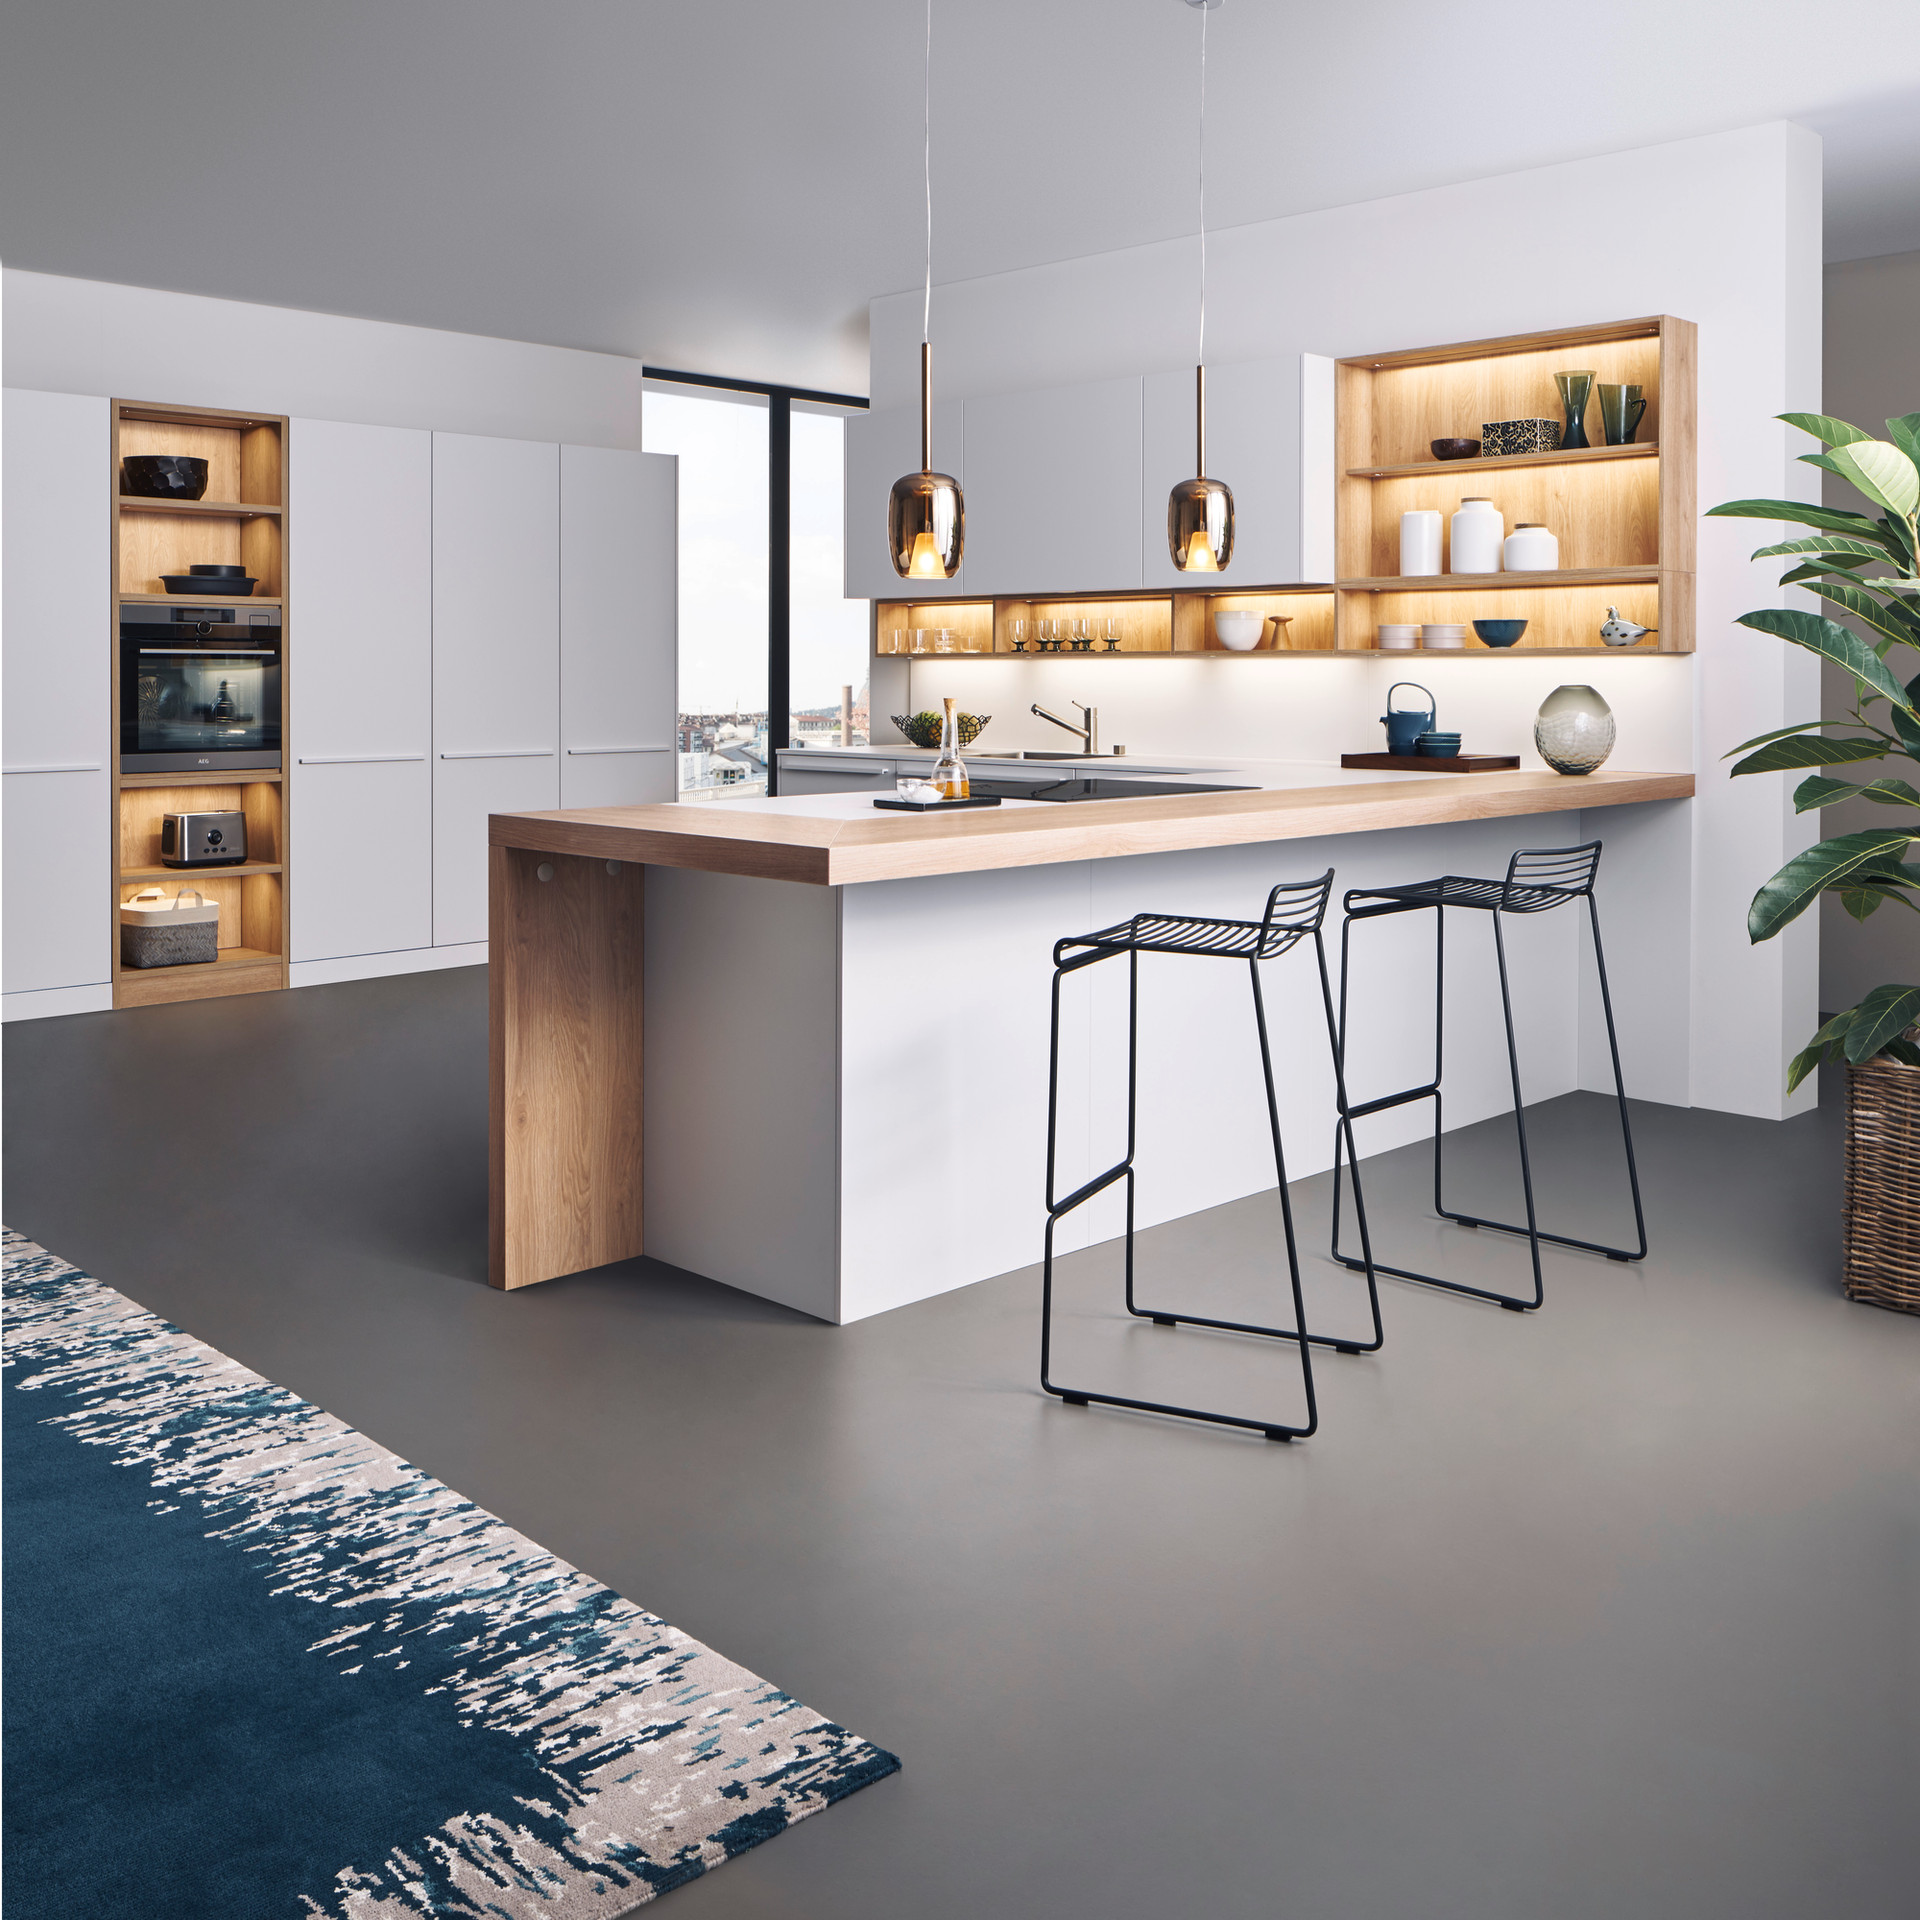 Leicht Bondi and Synthia cabinets